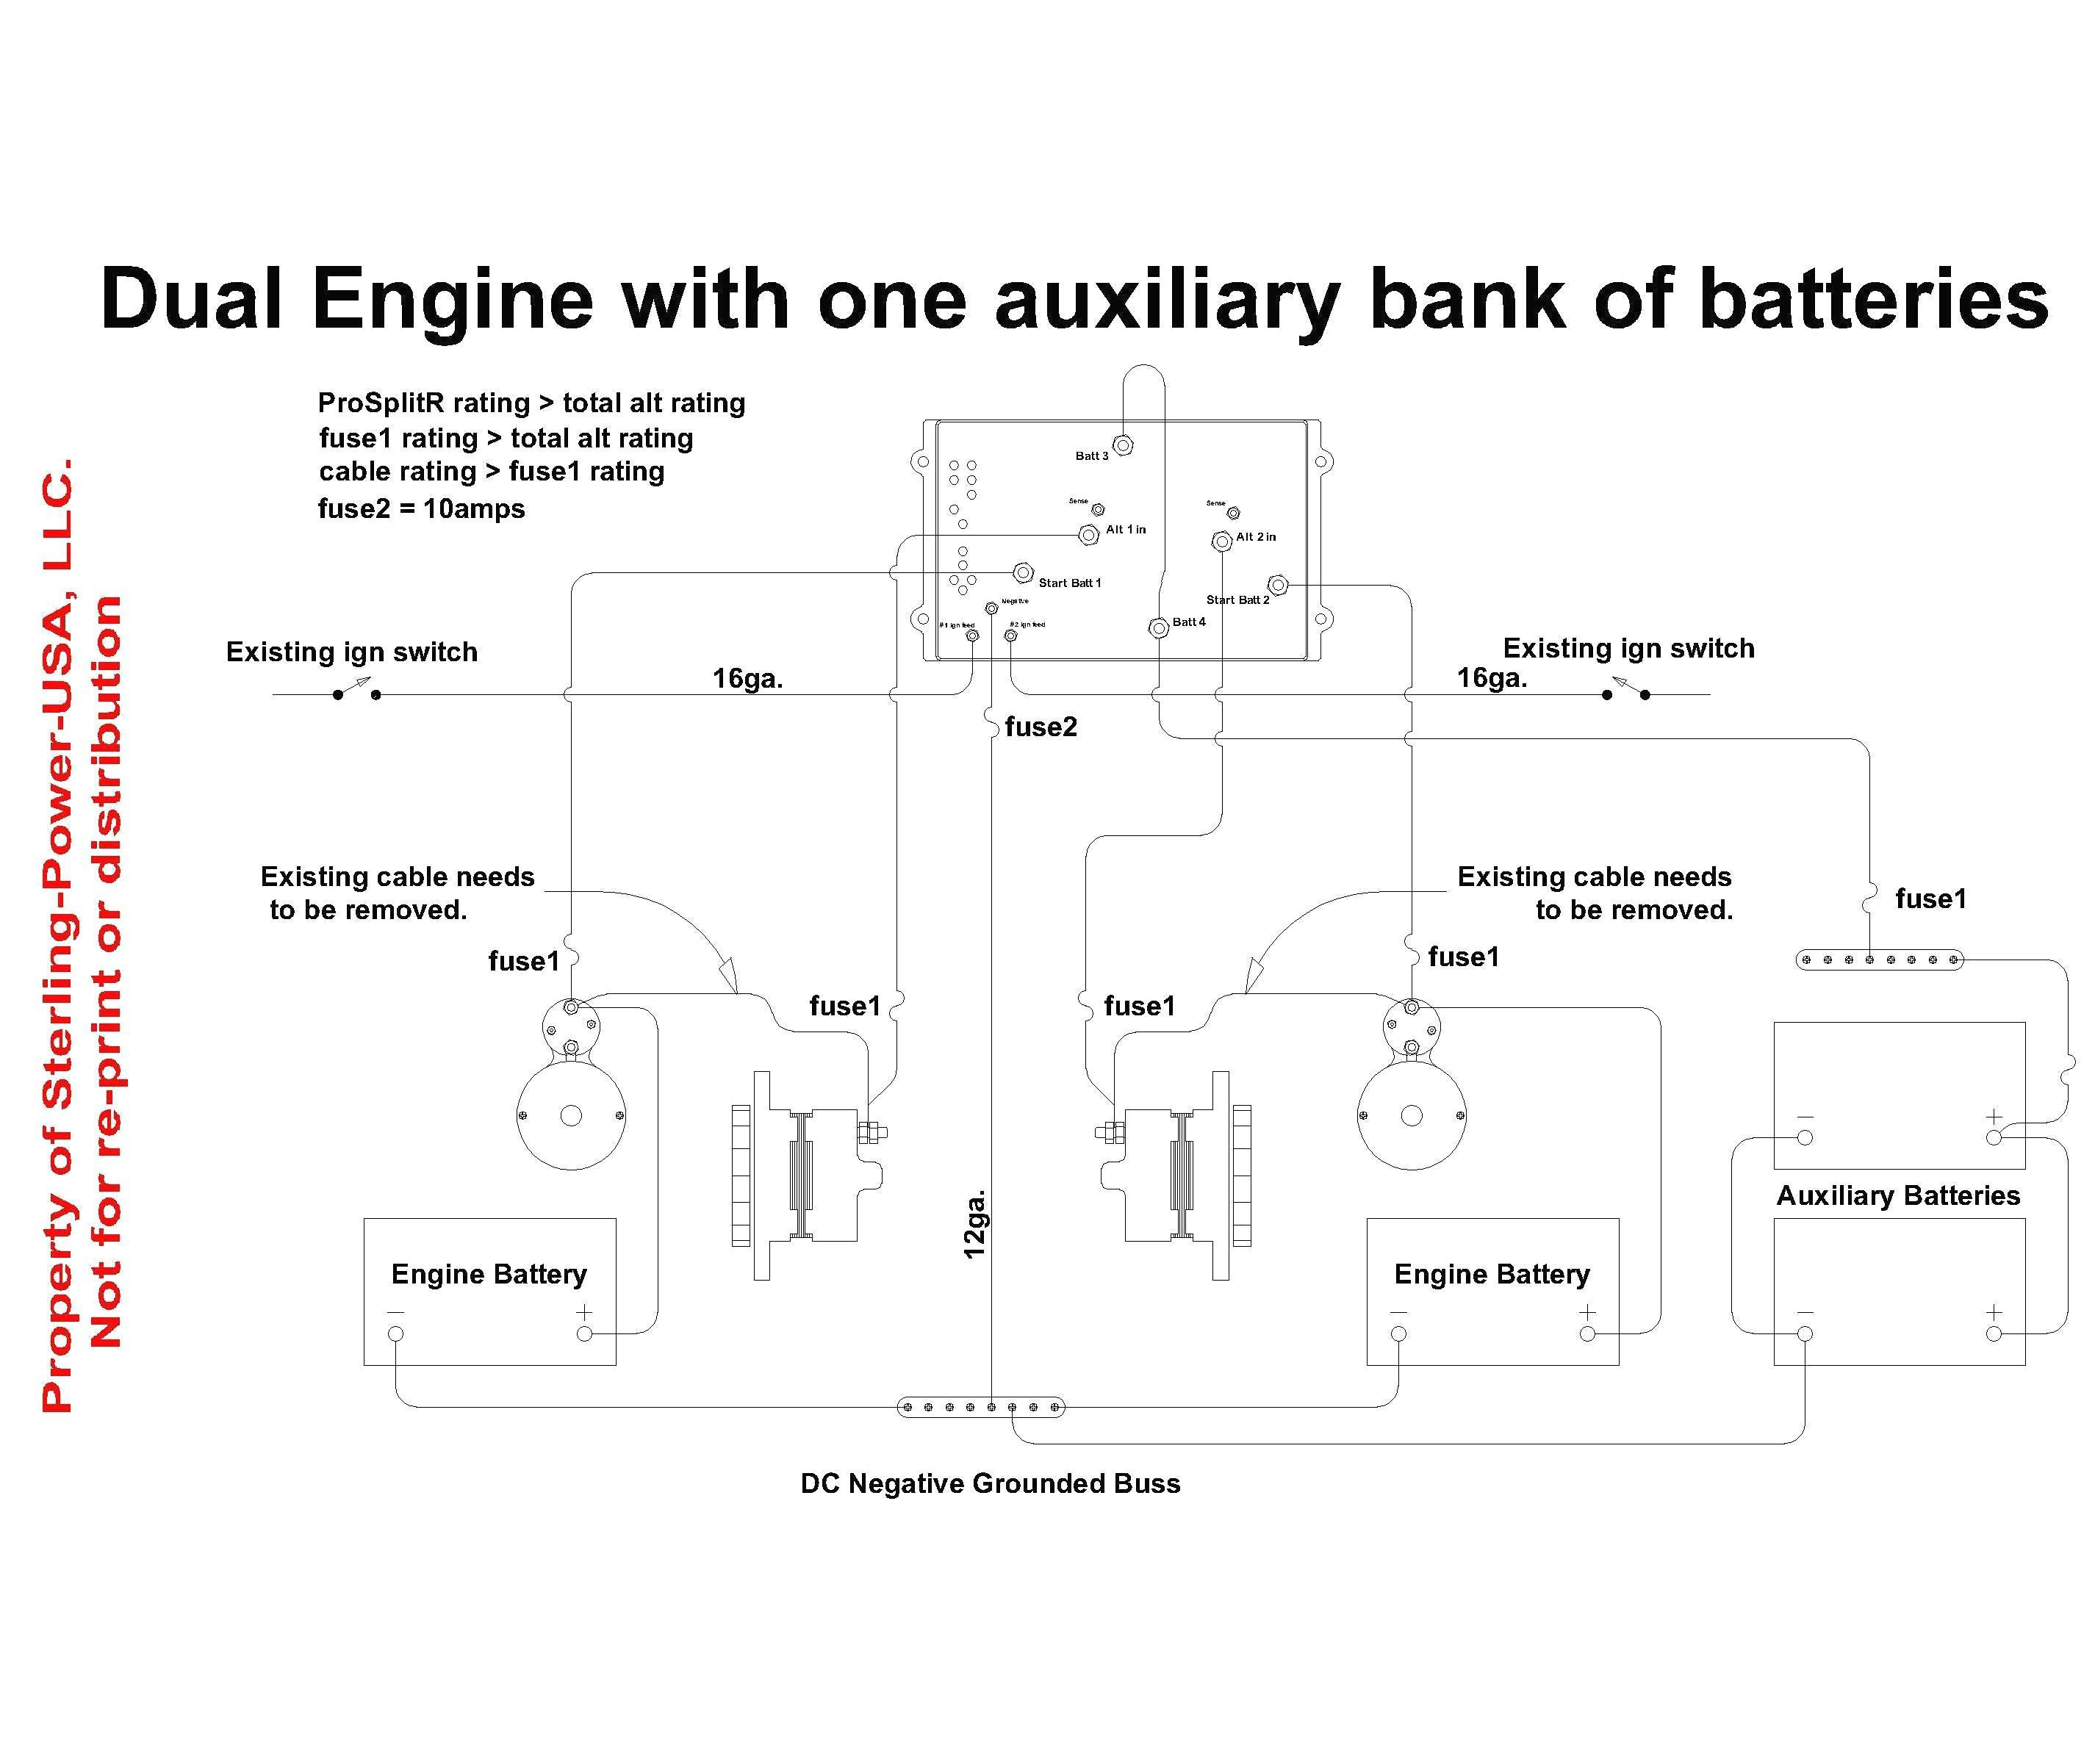 battery isolator wiring diagram manufacturers Collection-Battery isolator Wiring Diagram Unique Great Boat Battery isolator Wiring Diagram Boat Battery isolator 18-p